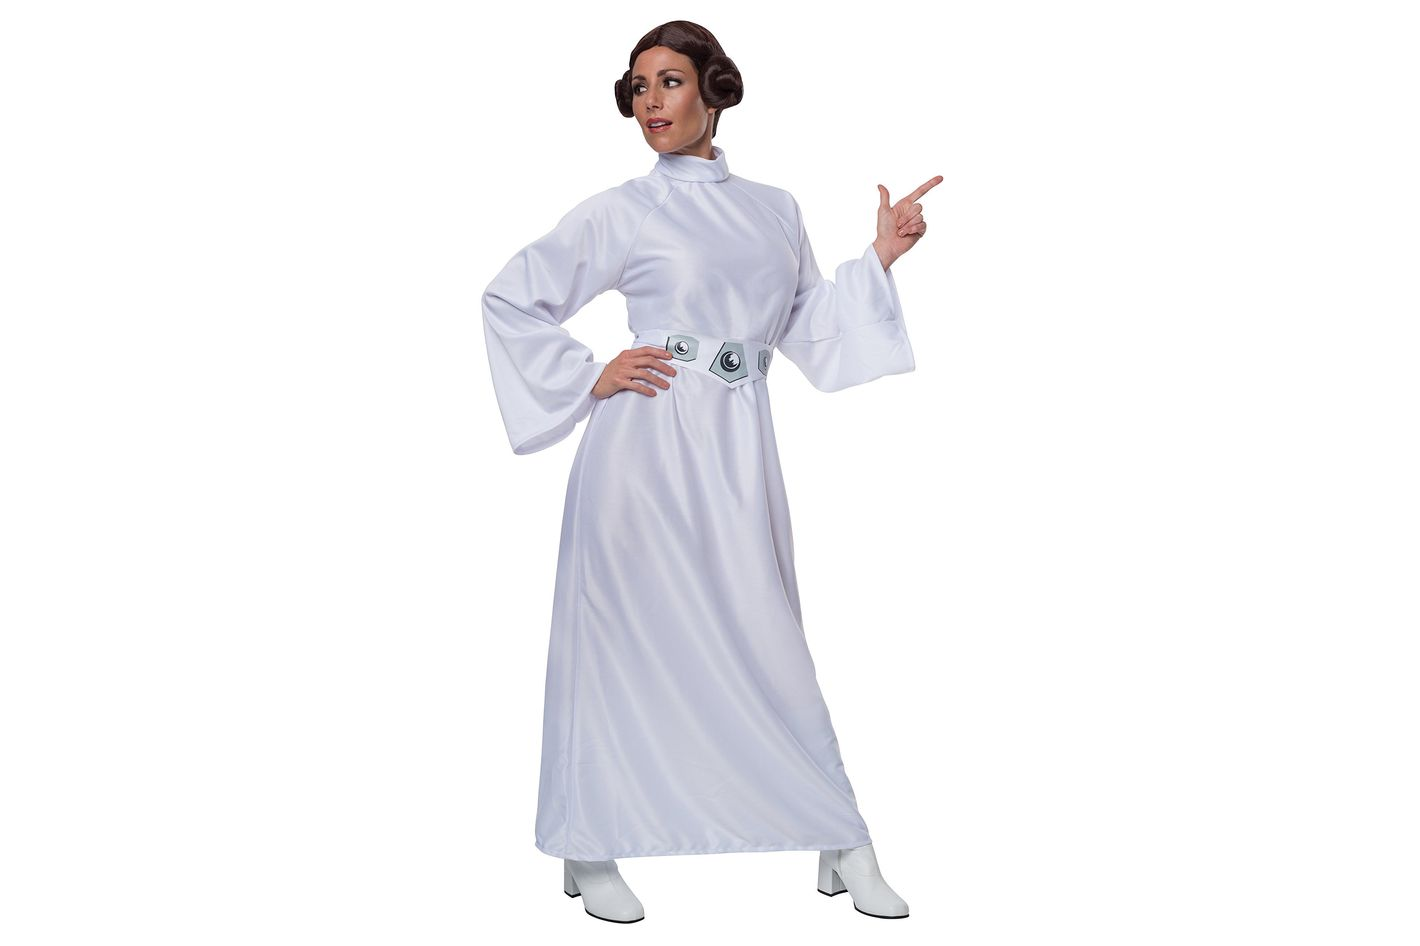 Rubie's Star Wars a New Hope Deluxe Princess Leia Costume